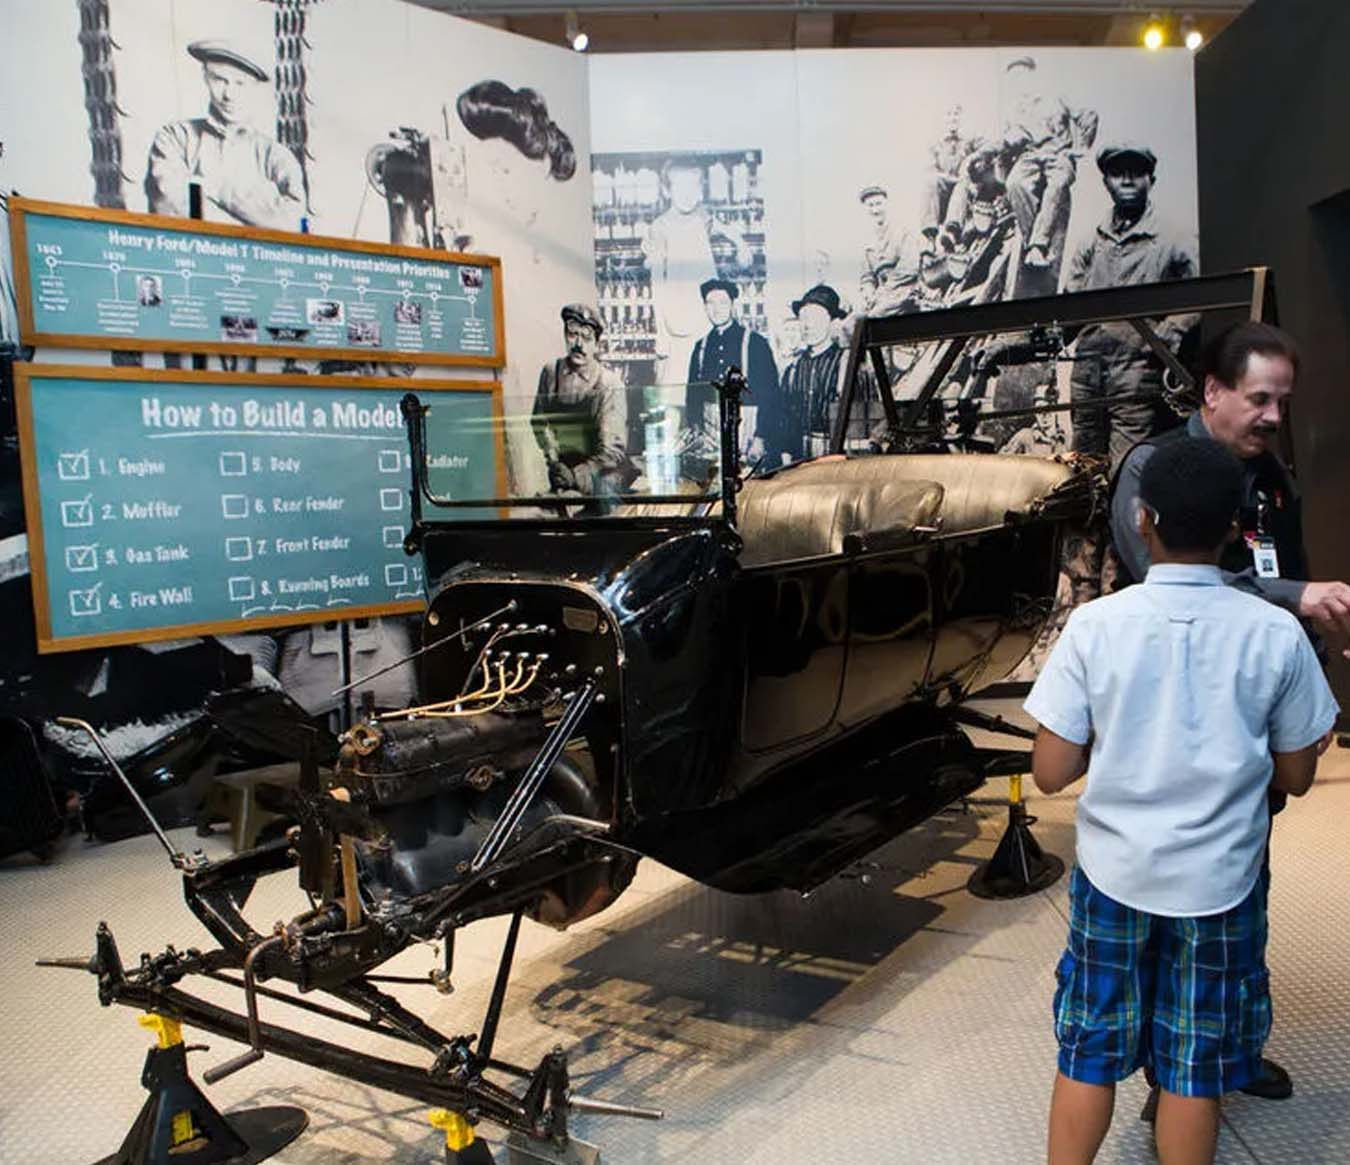 Things to Do in Detroit - The Henry Ford Museum